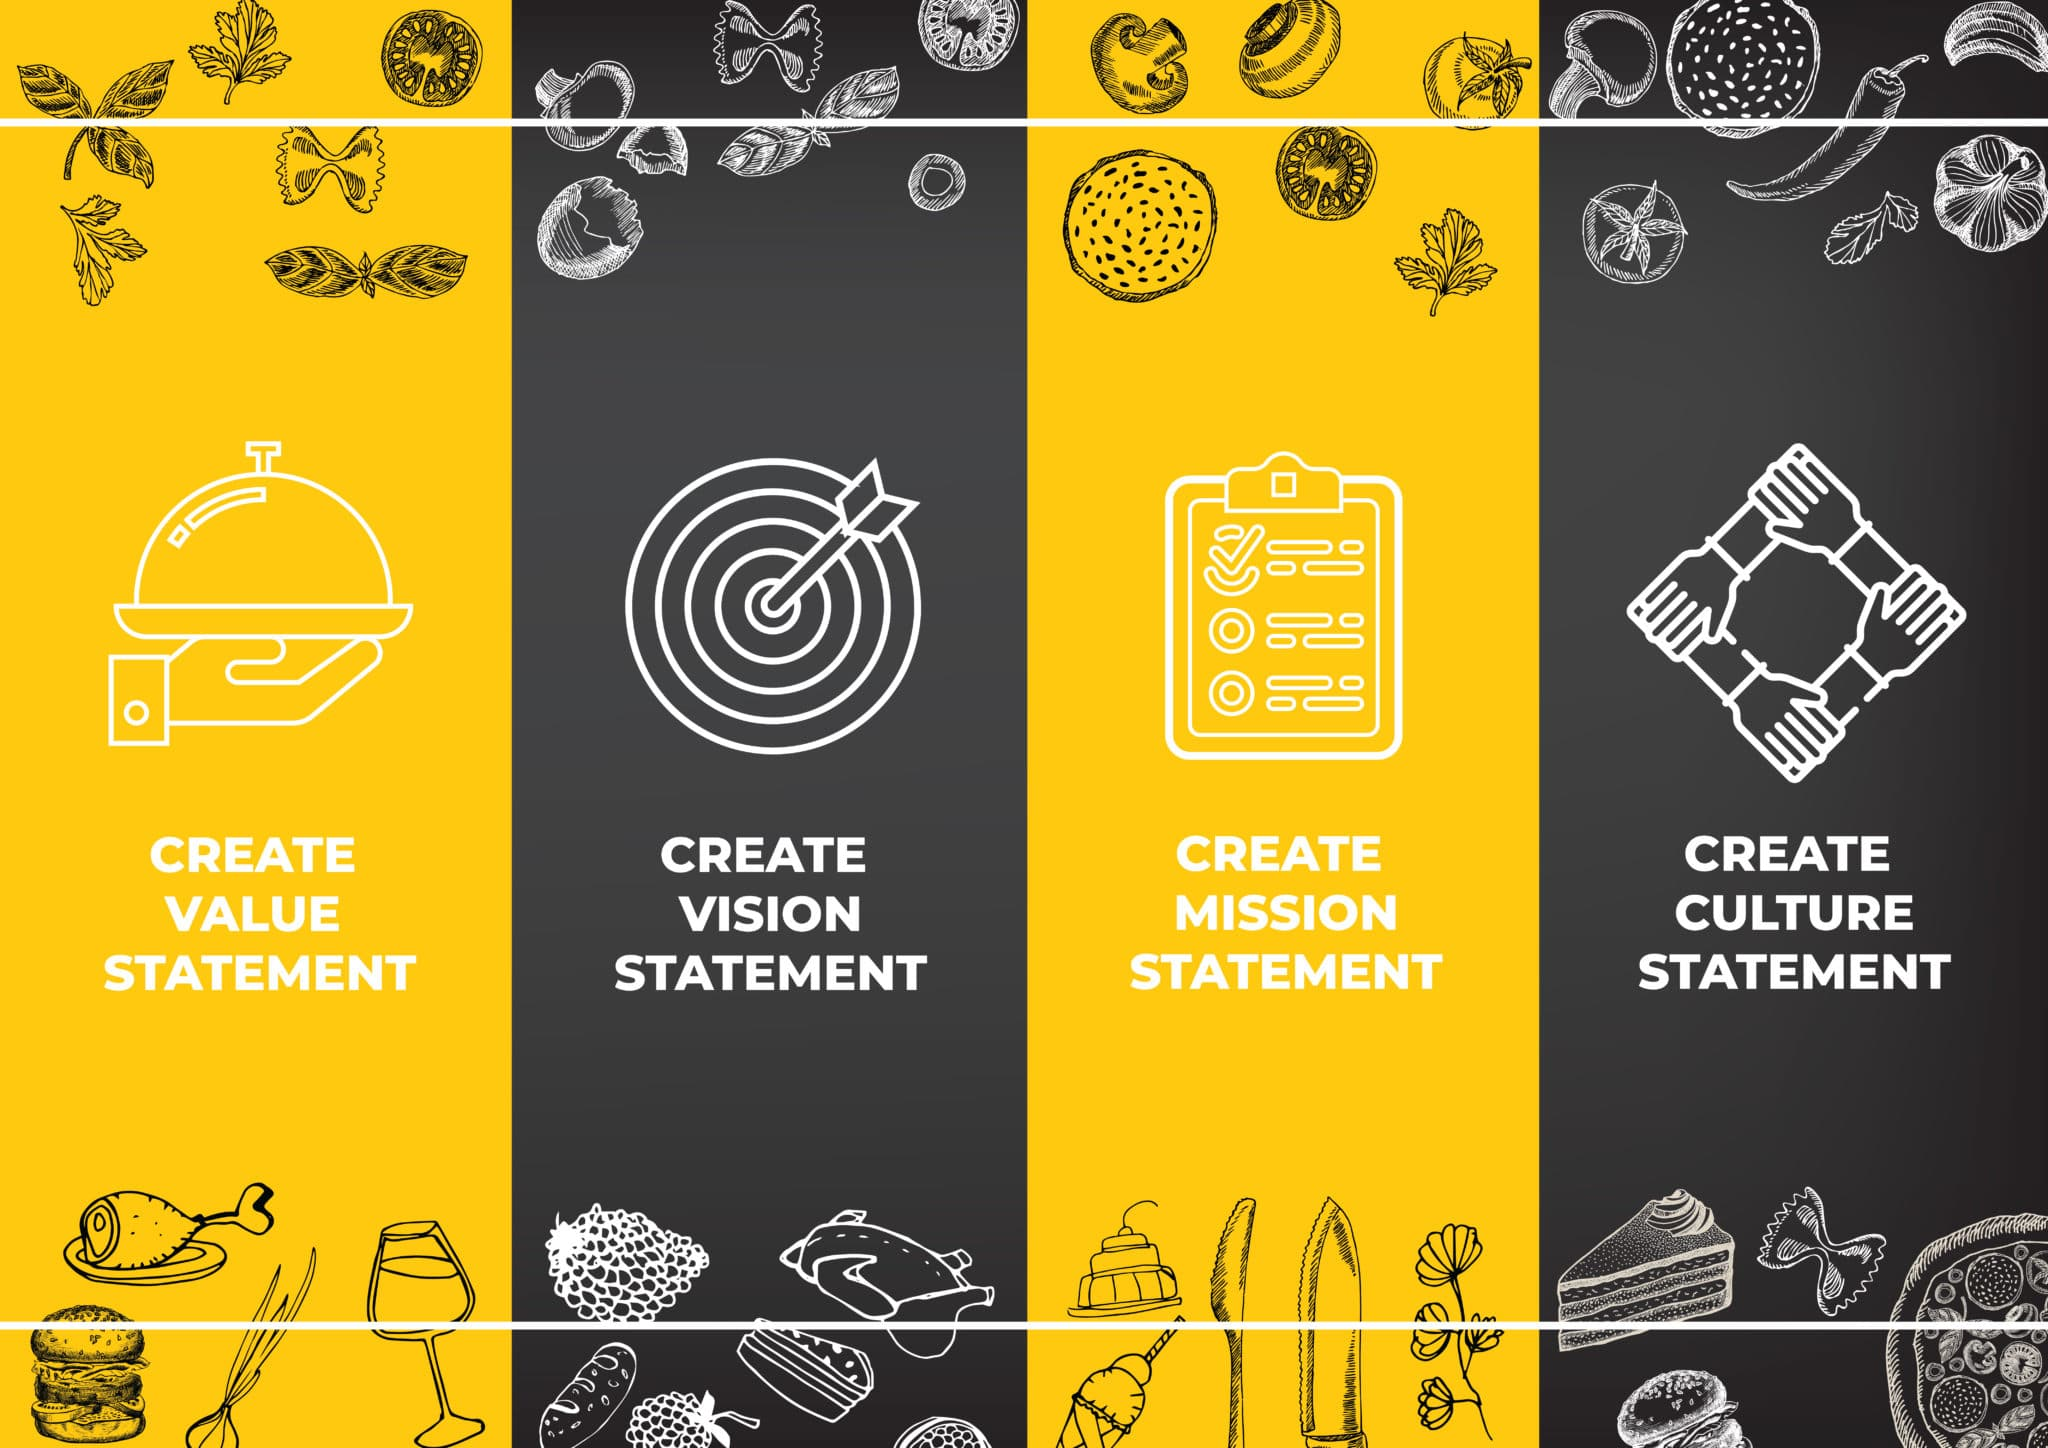 10 Examples of Restaurant Mission & Vision Statements